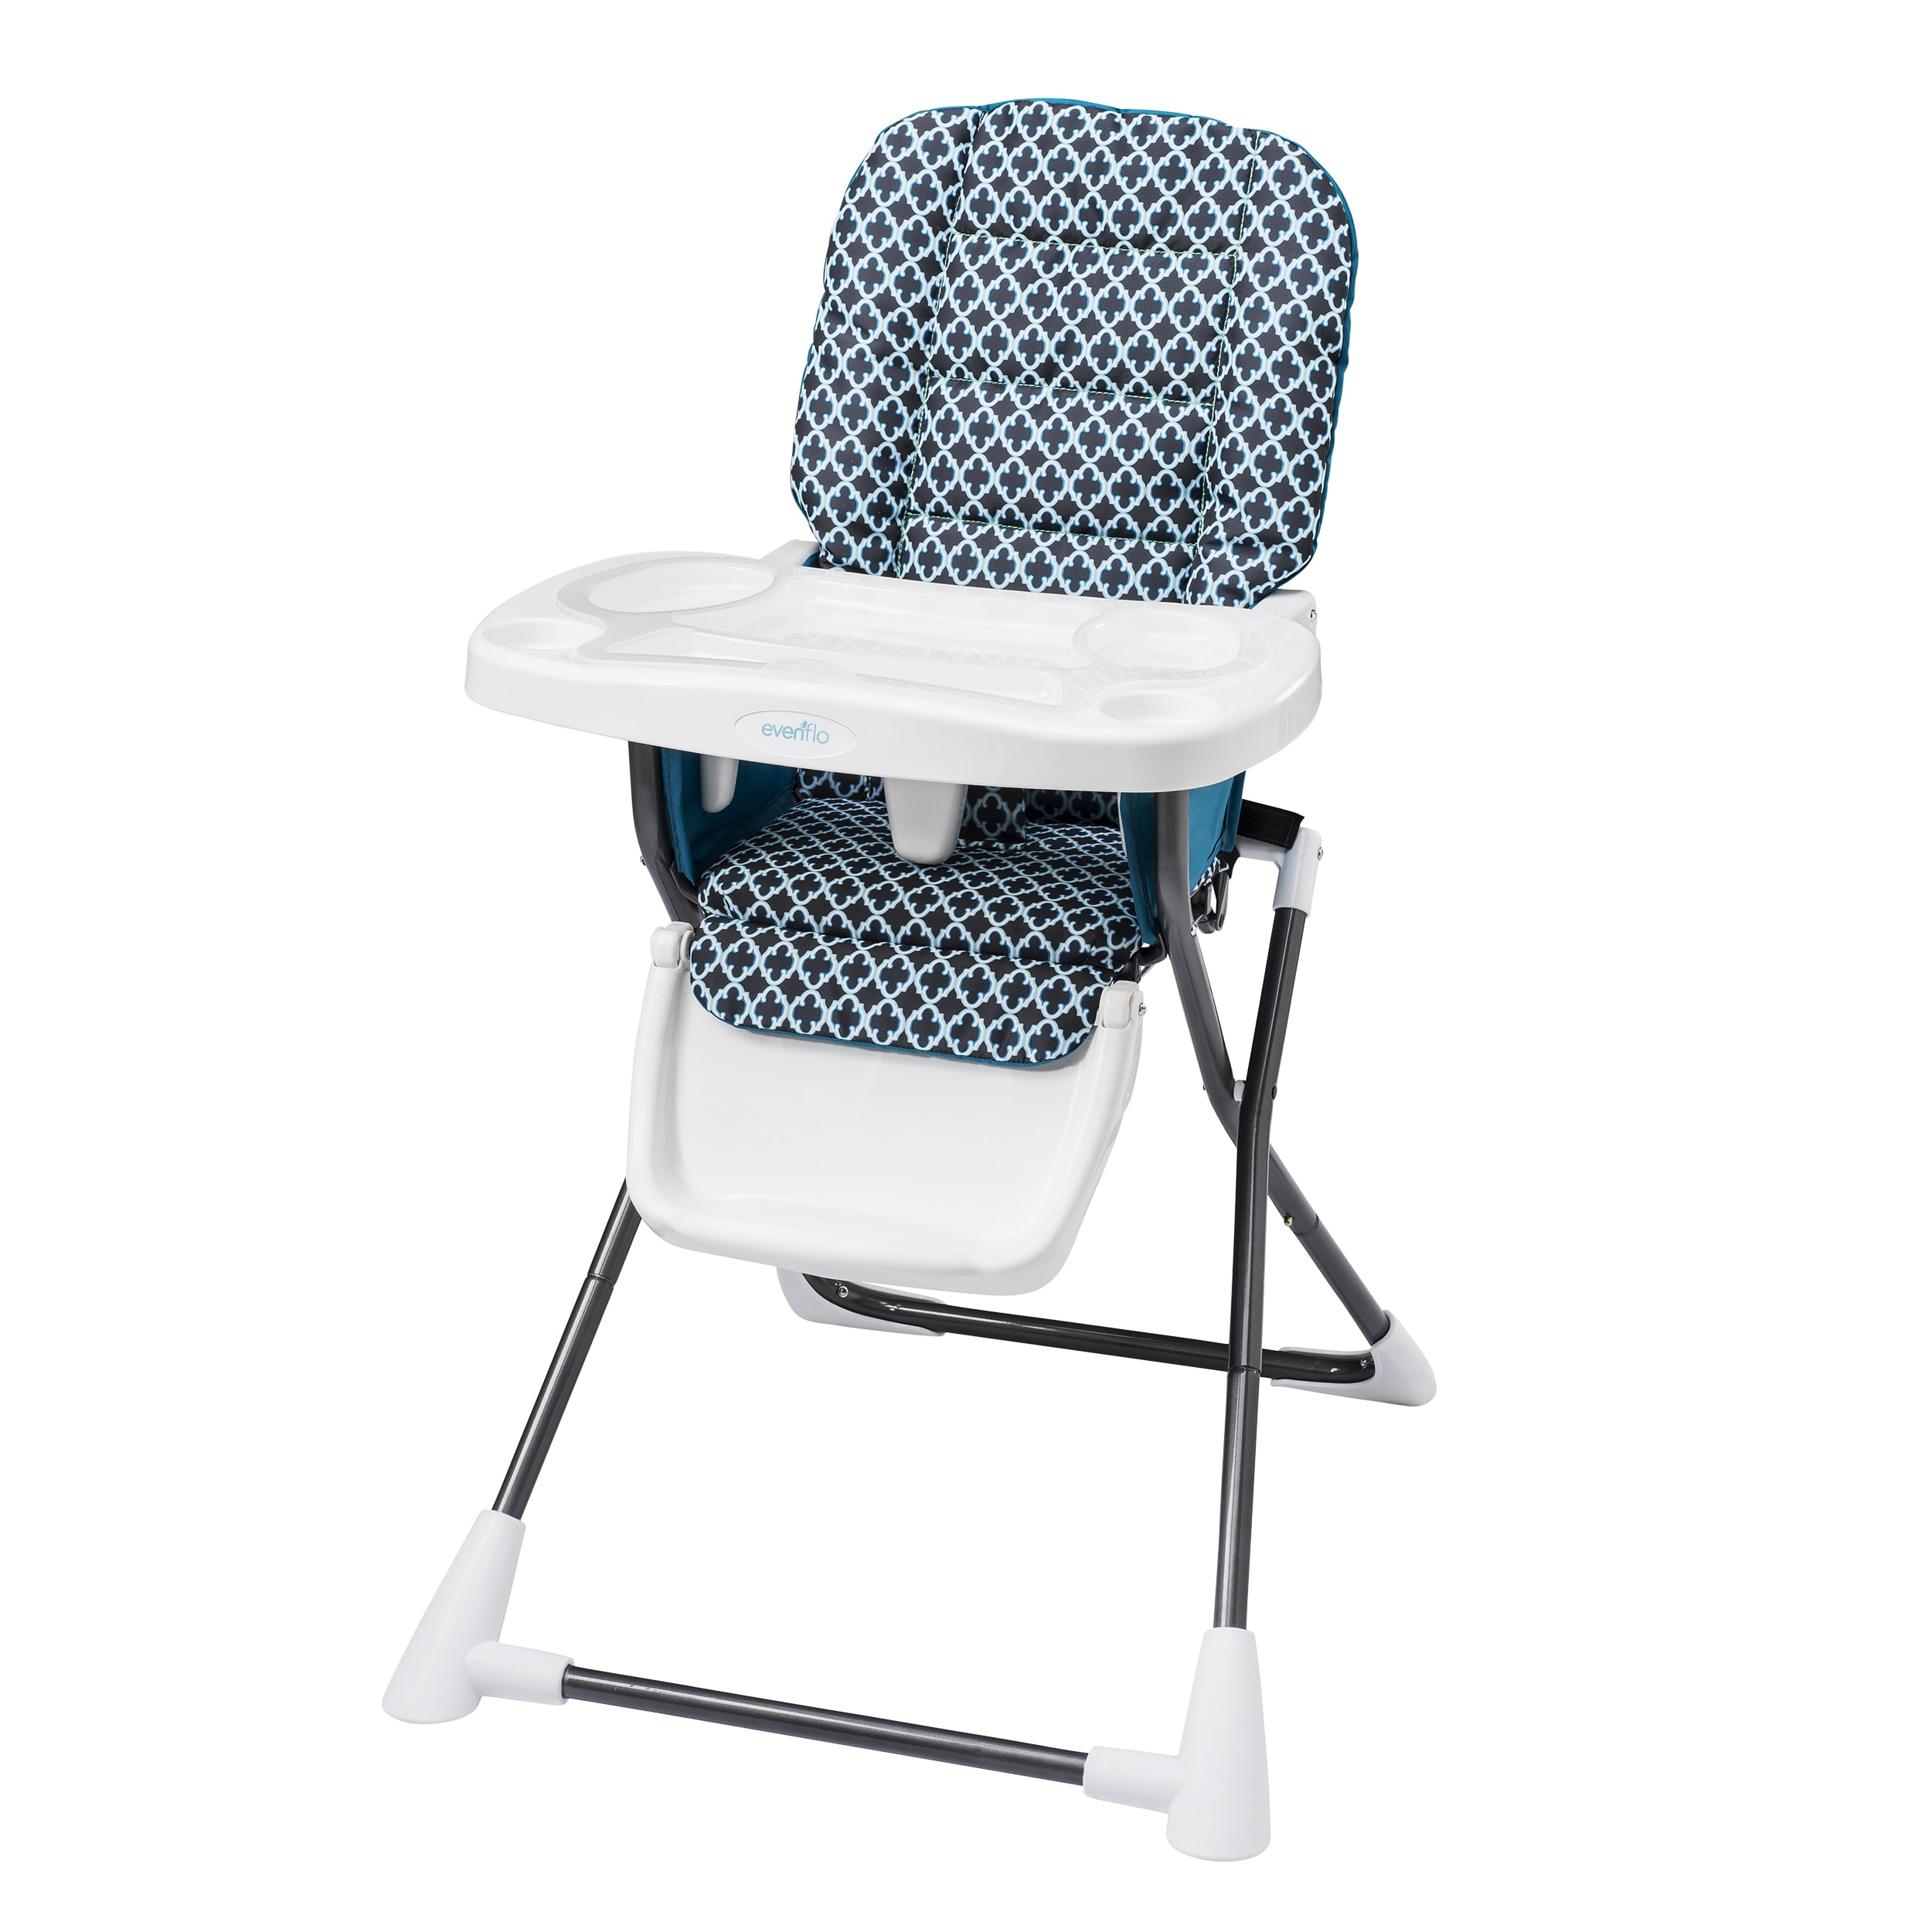 Evenflo pact Fold High Chair in Monaco Free Shipping Today